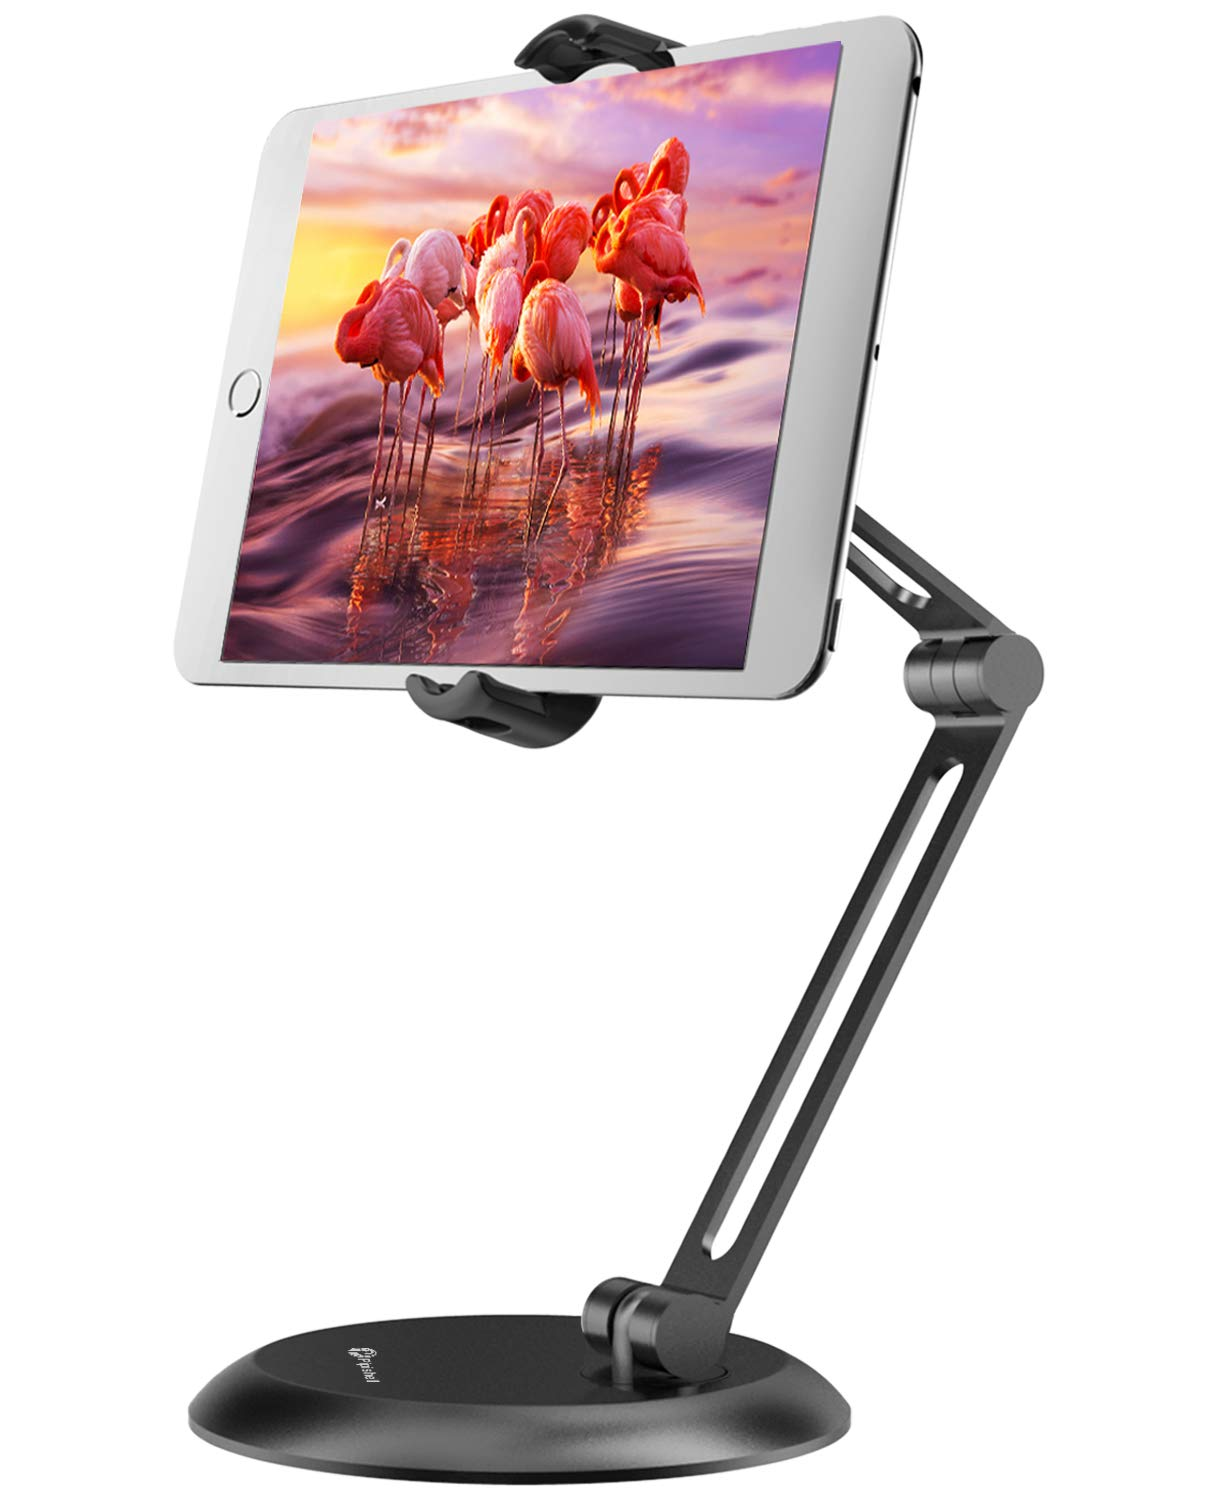 Adjustable Tablet Stand Desk Holder (360° Swivel) for iPad Pro Air, Nintendo Switch, Kindle, All iPhone and Android Phone